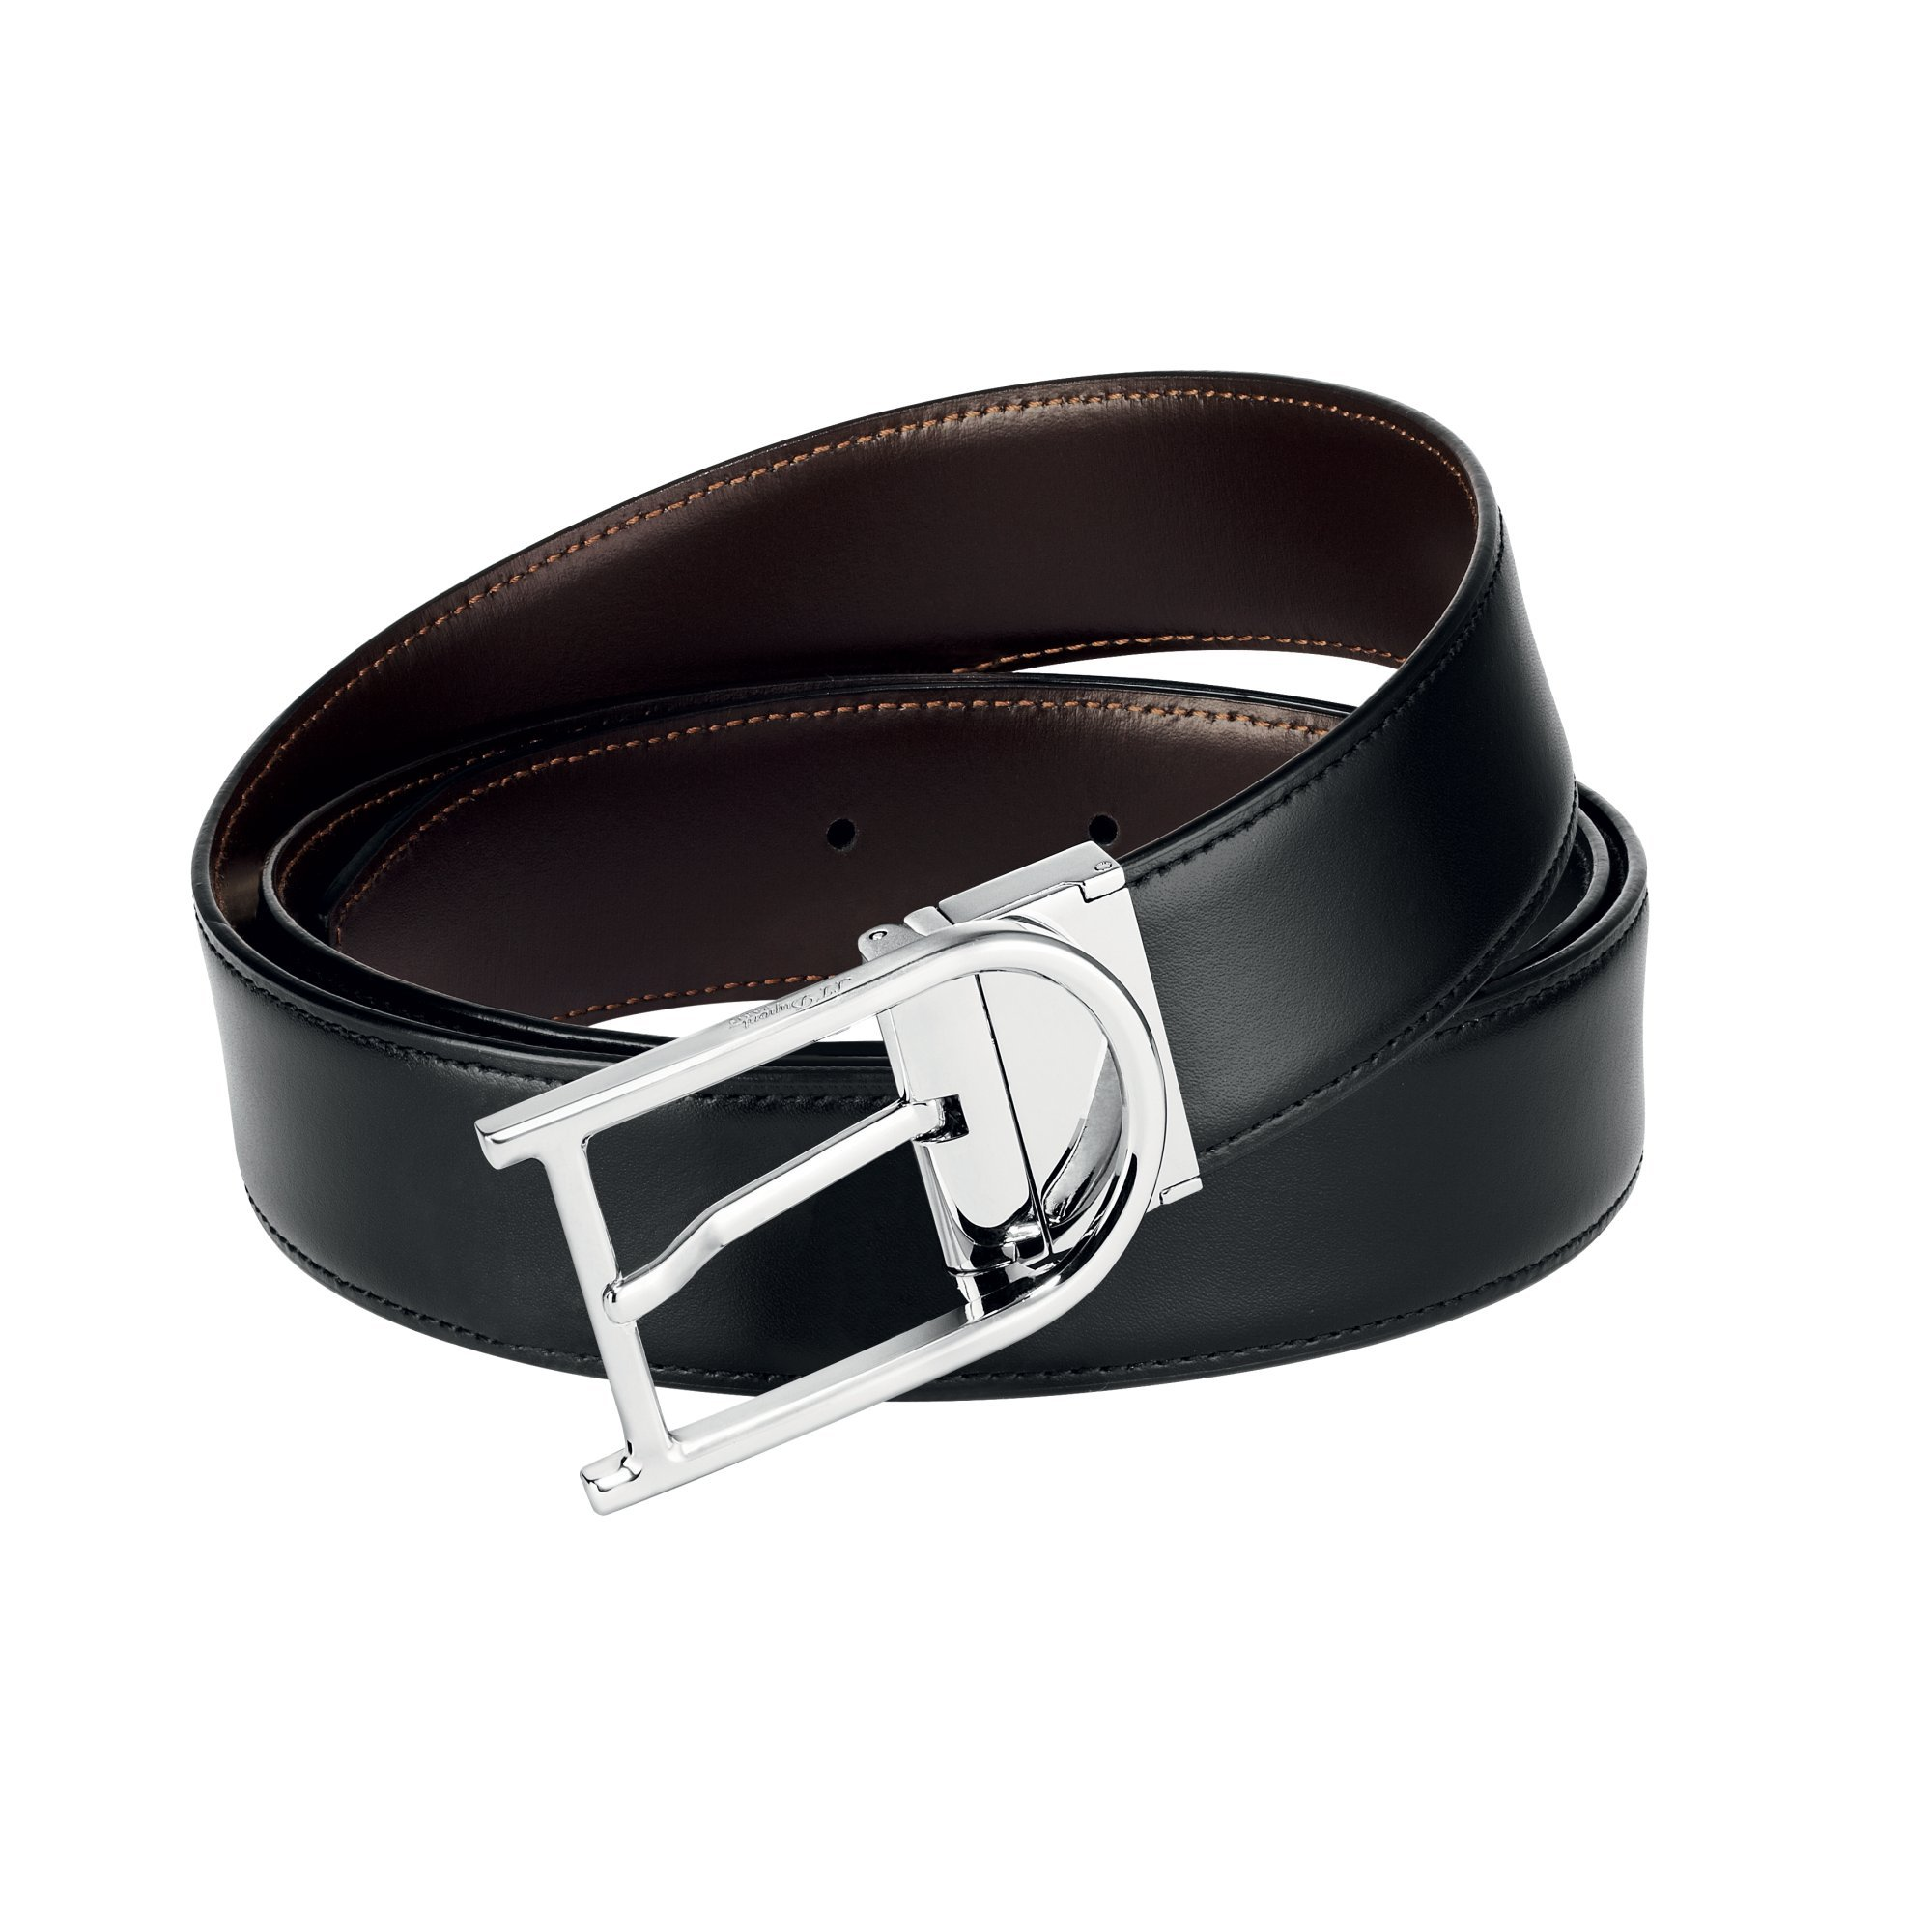 S.T. Dupont 9470120 Palladium Auto-Reversible Buckle Business Belt